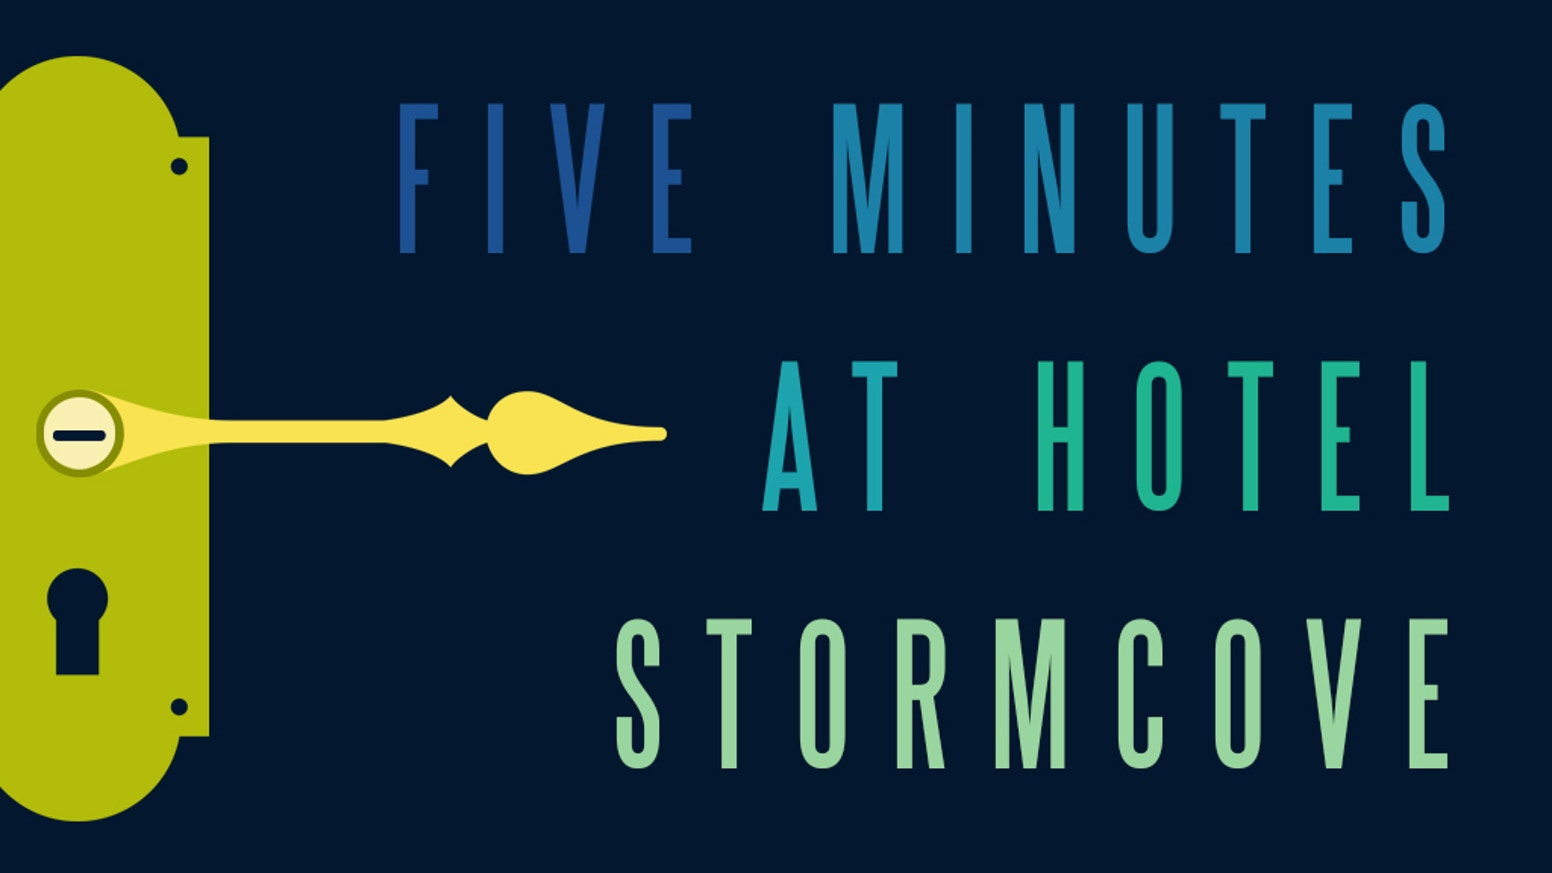 Five Minutes at Hotel Stormcove by Atthis Arts, LLC » We're funded